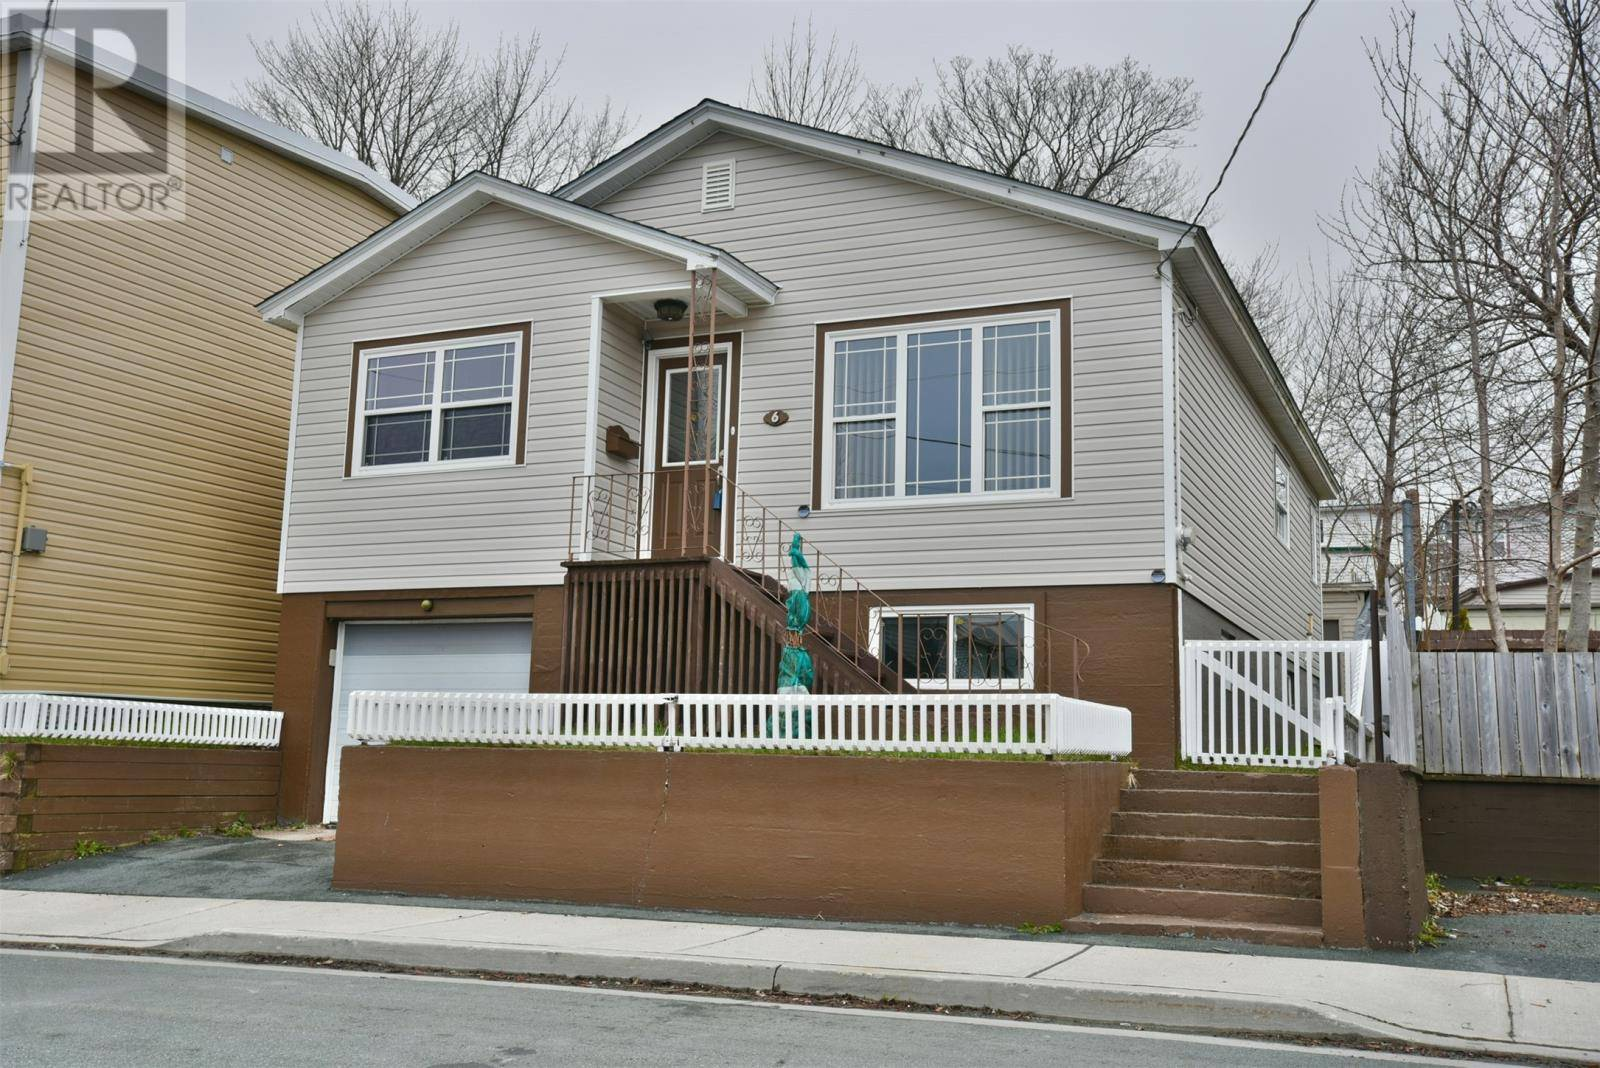 House for sale at 6 Eric St St. John's Newfoundland - MLS: 1202550